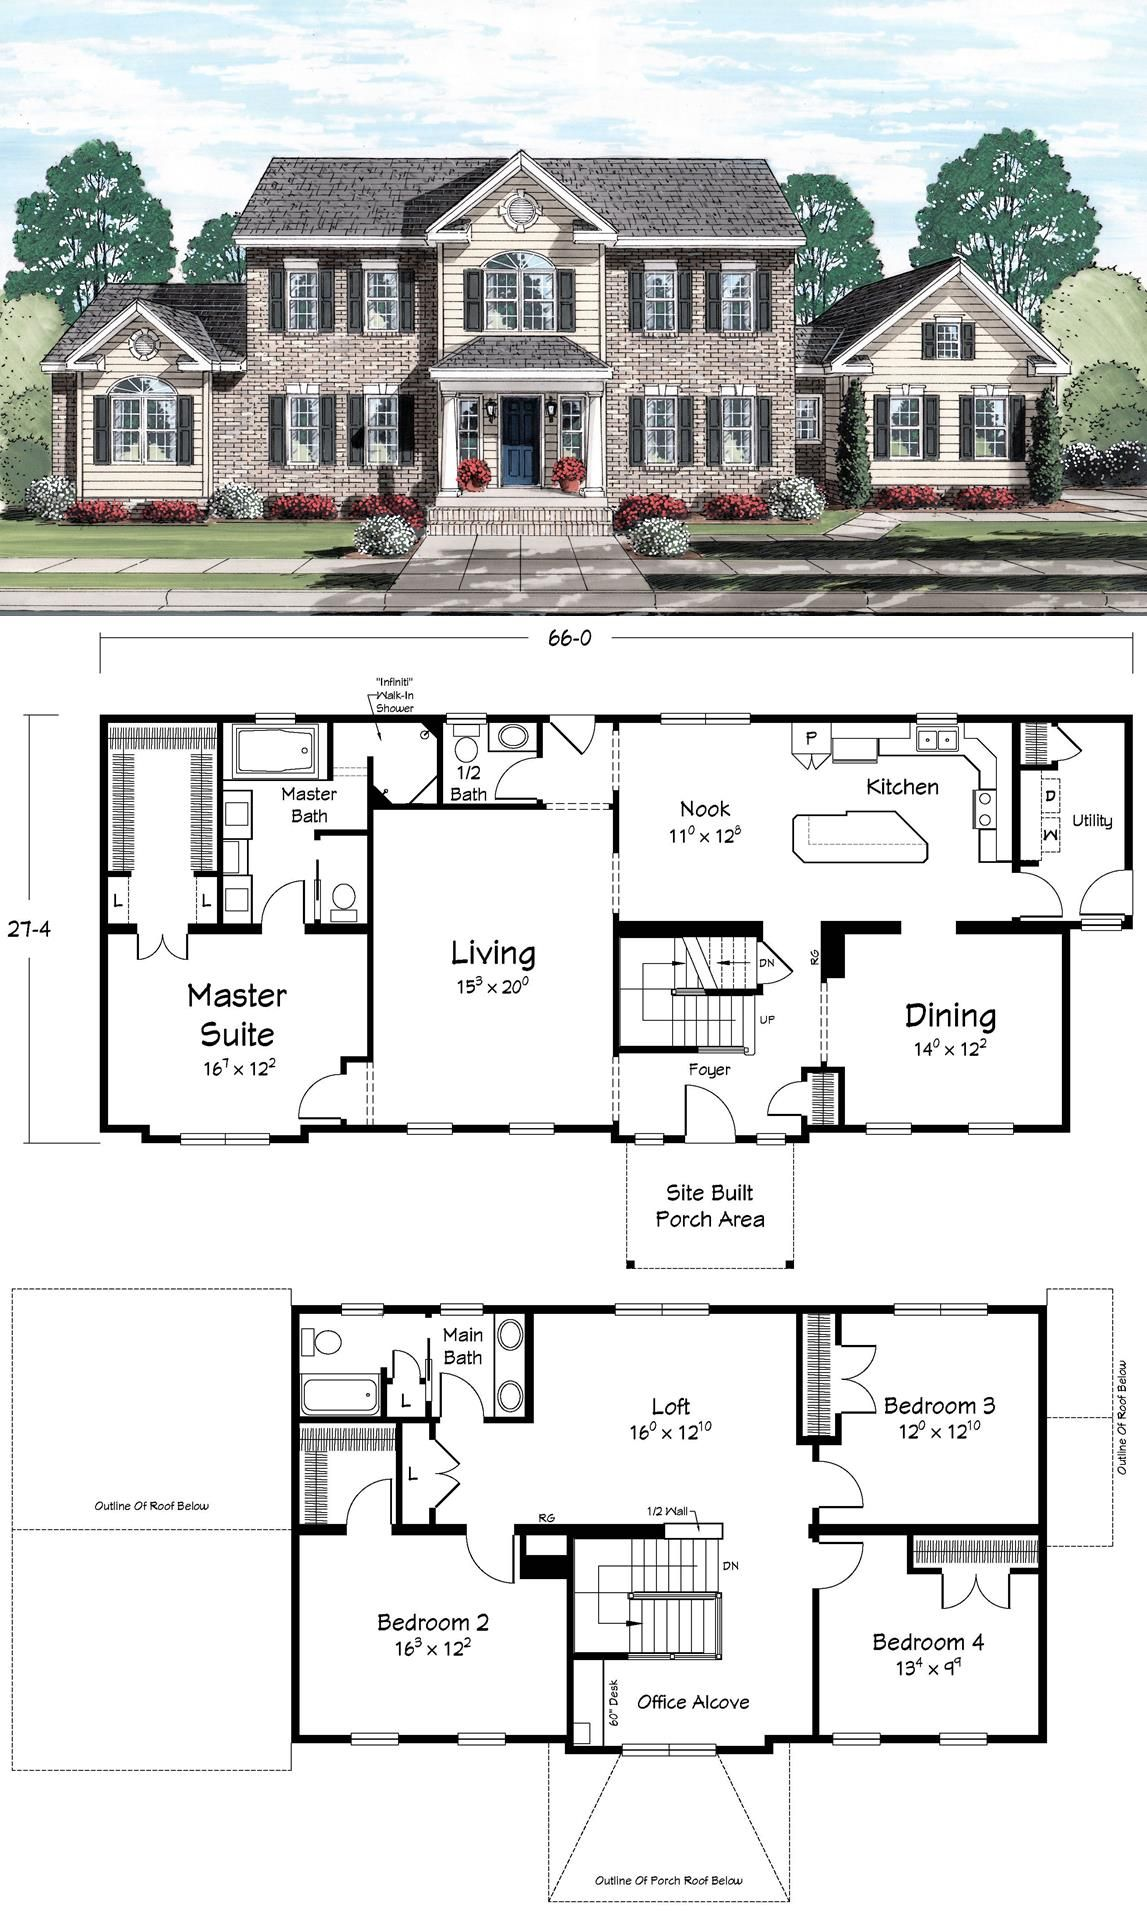 Cleverly Use Every Square Foot Of Space Sims 4 House Plans Sims House Plans Sims House Design